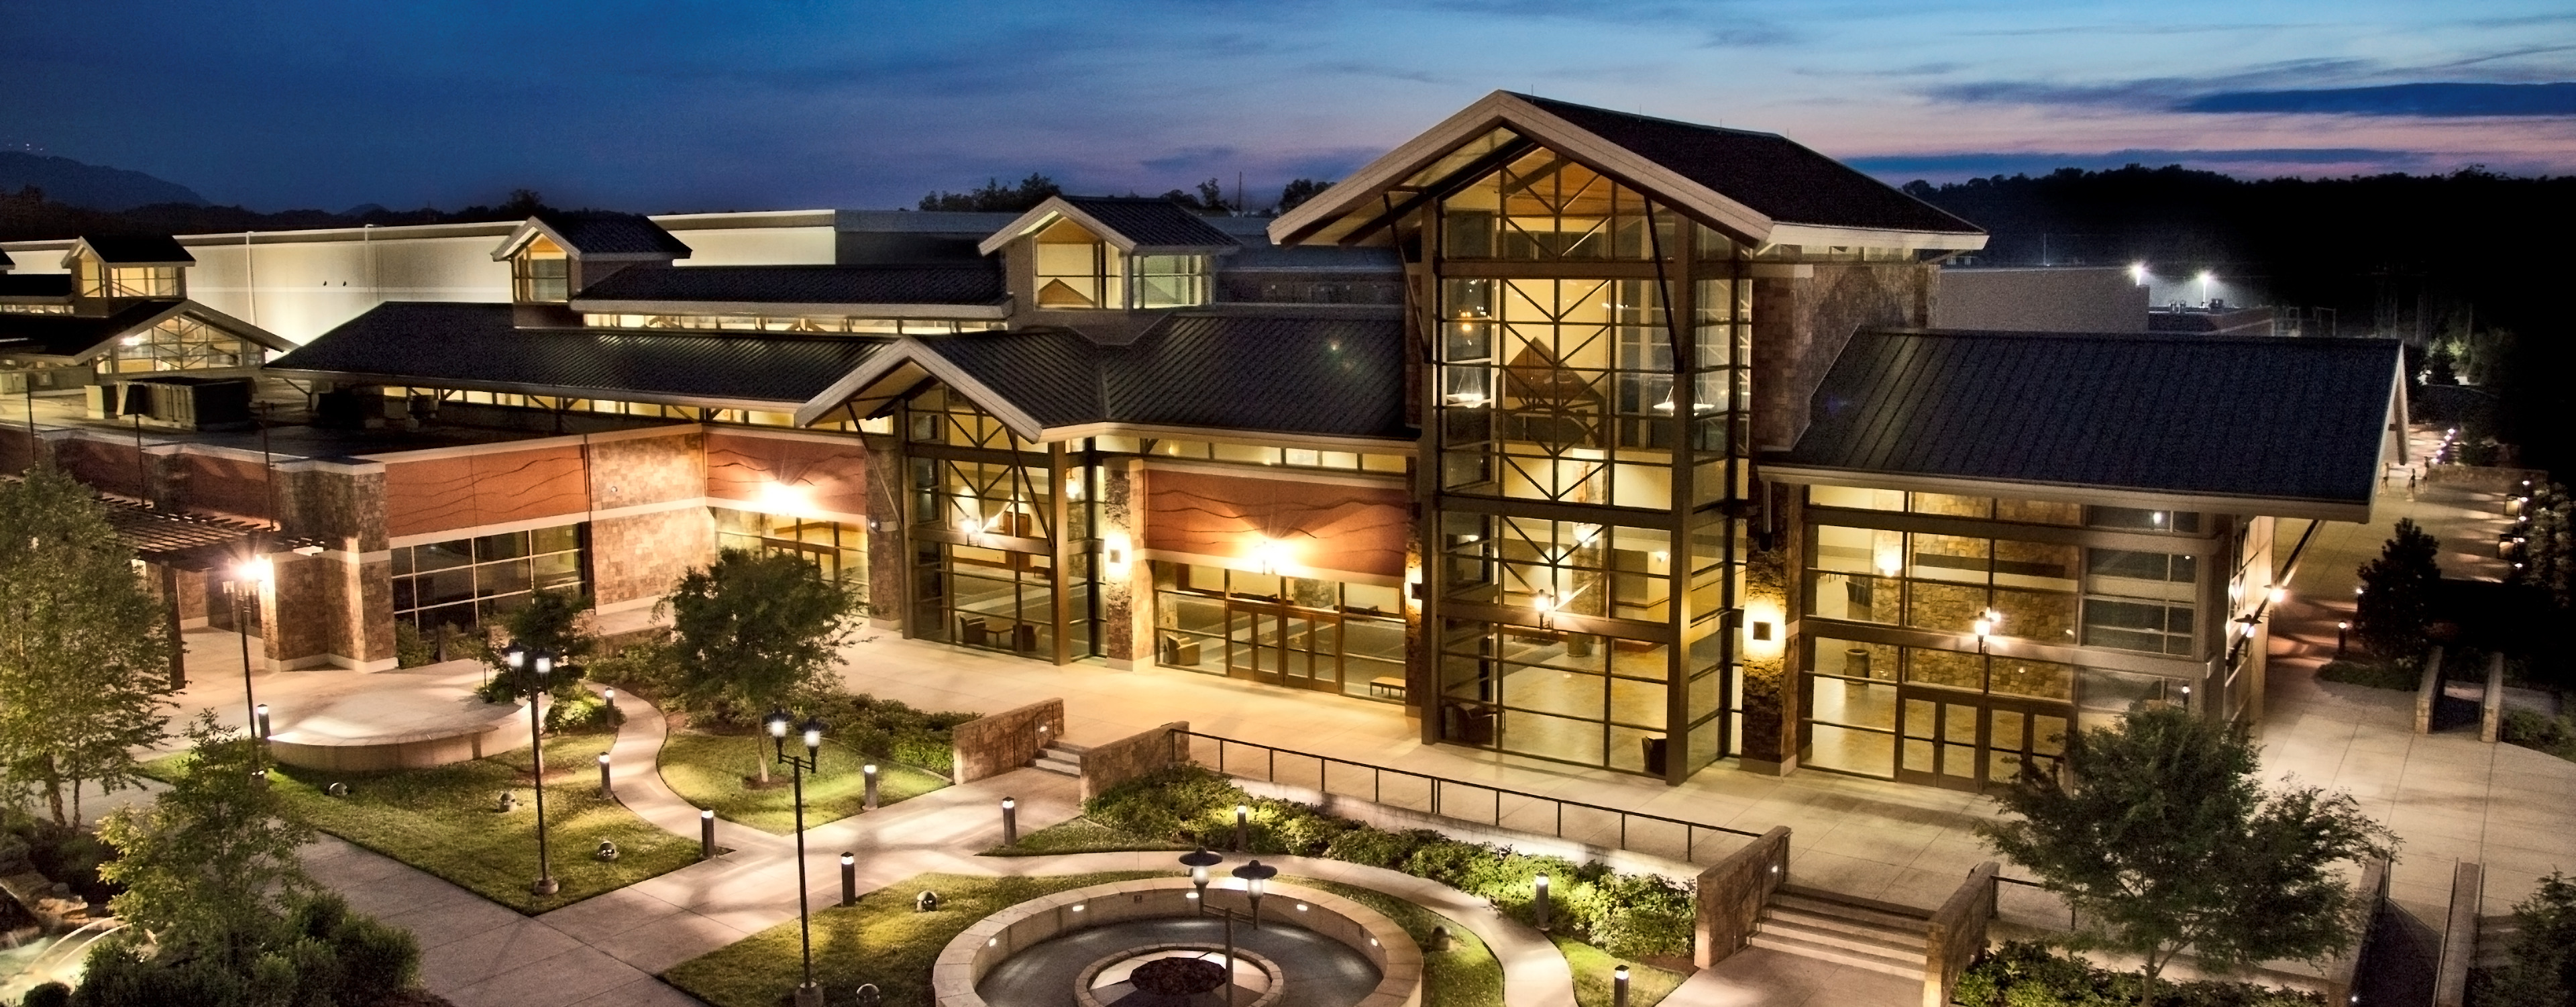 Sevierville Events Center and Parking Garage